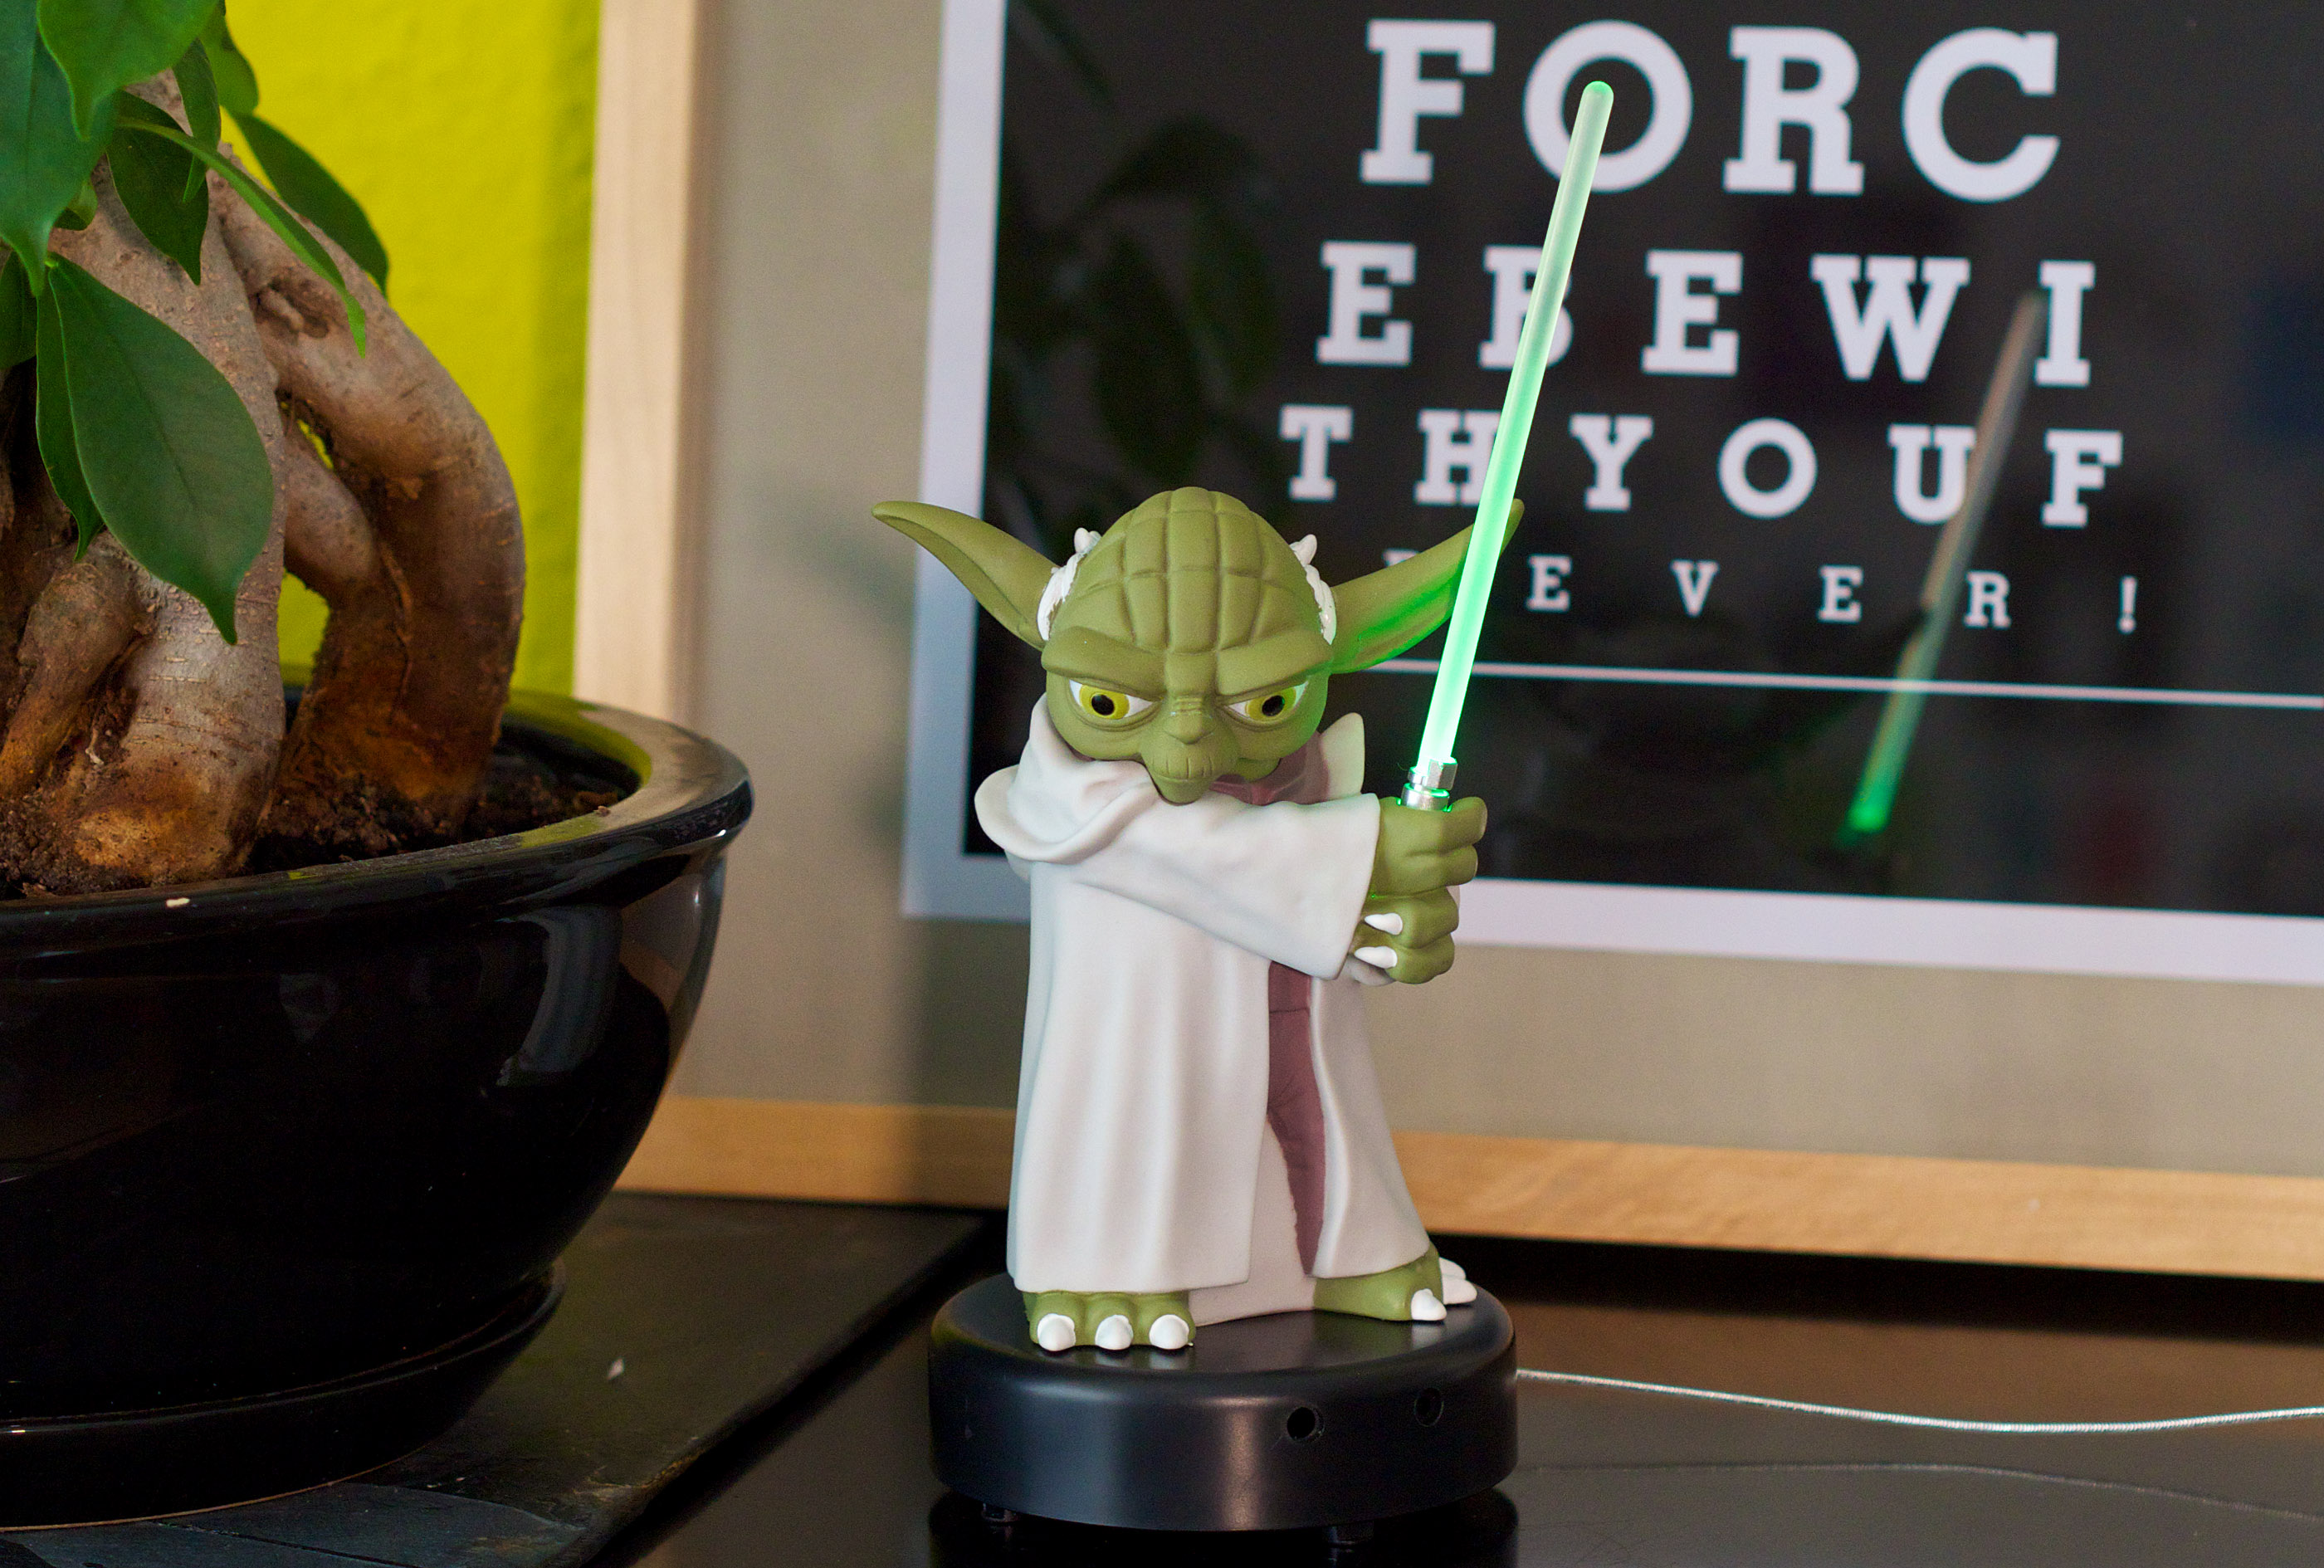 Star Wars Yoda USB Desk Protector